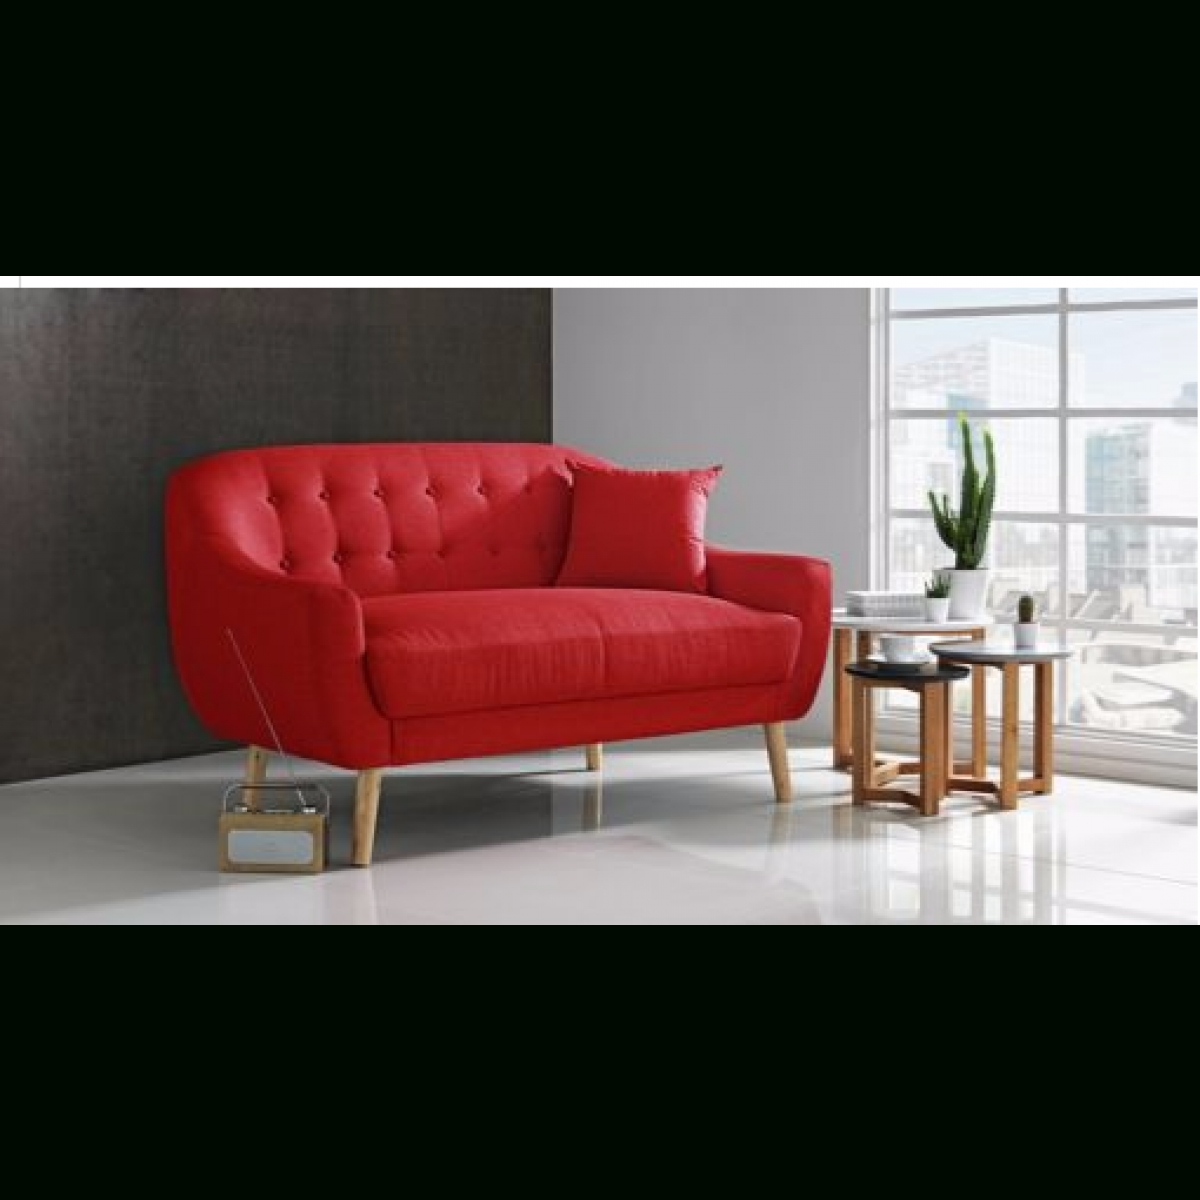 Hygena Lexie Retro Compact Fabric 2 Seater Sofa – Poppy Red For Best And Newest Cheap Retro Sofas (View 10 of 20)